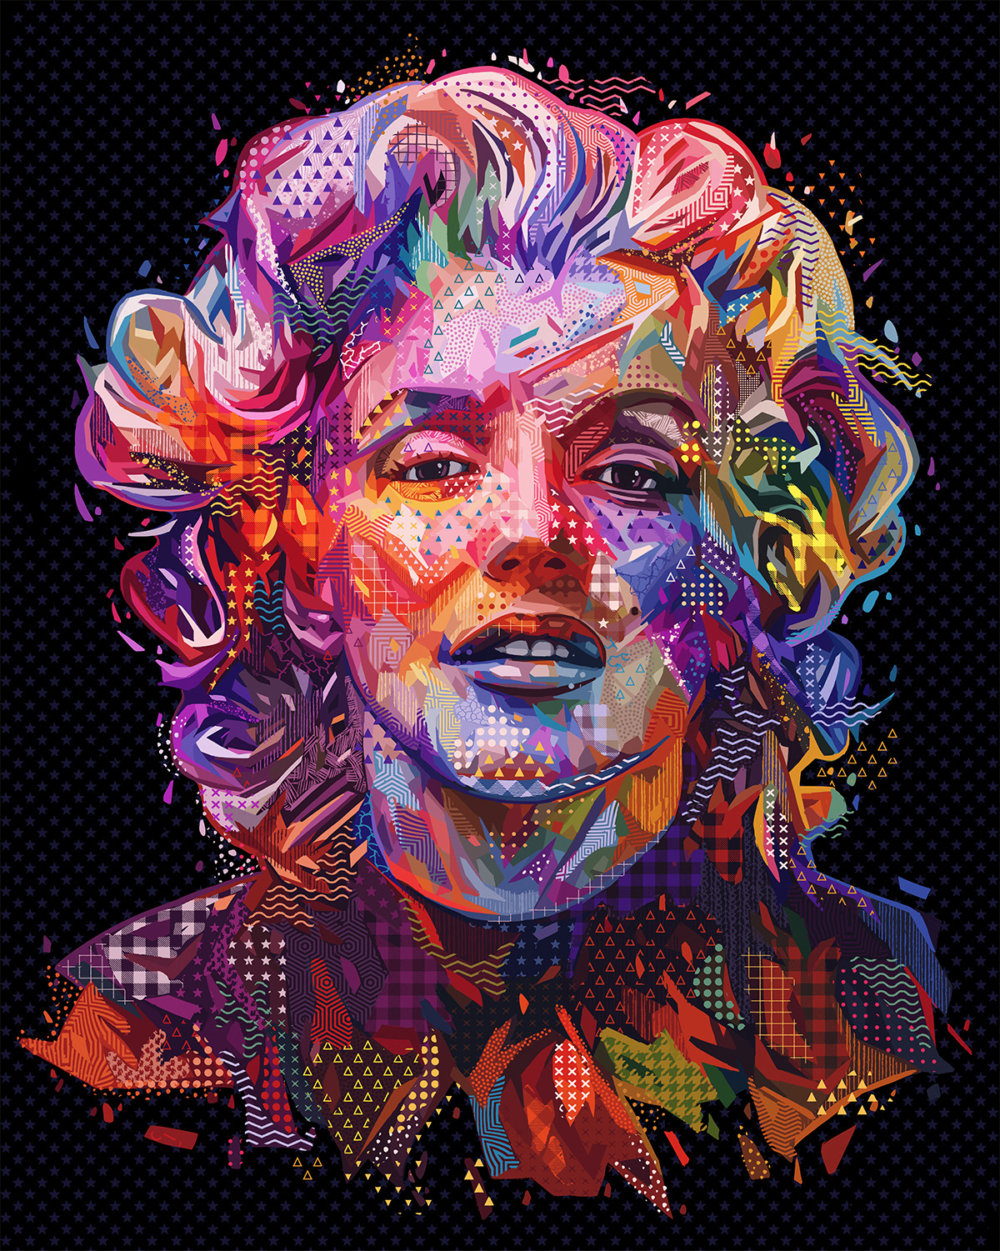 Pop Portraits Illustrations Of Pop Culture Icons In Colorful Patterns By Alessandro Pautasso 9